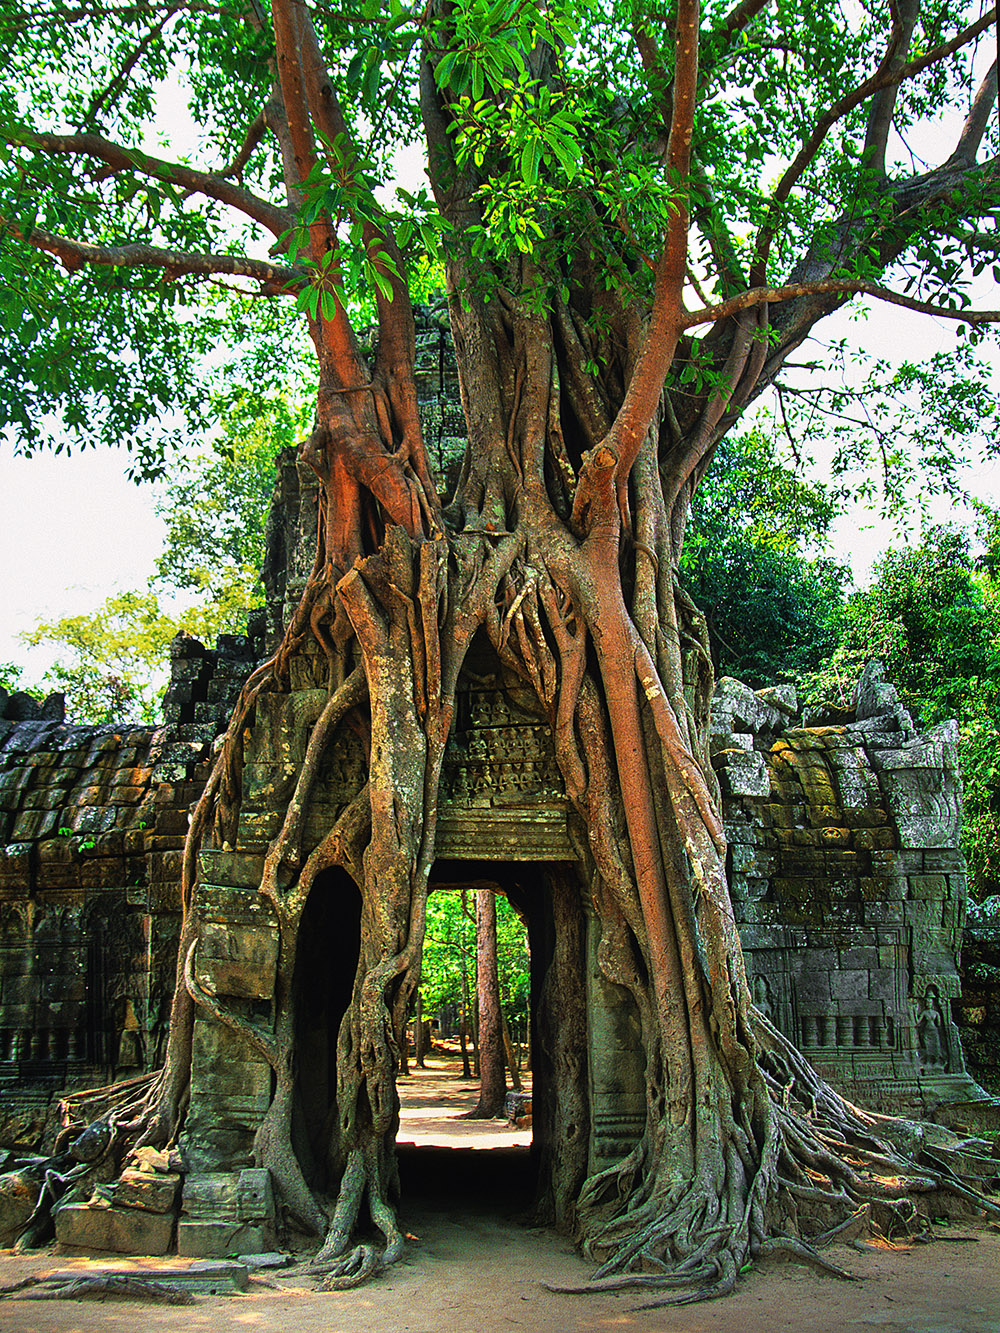 cambodia/angkor_door_tree_on_top